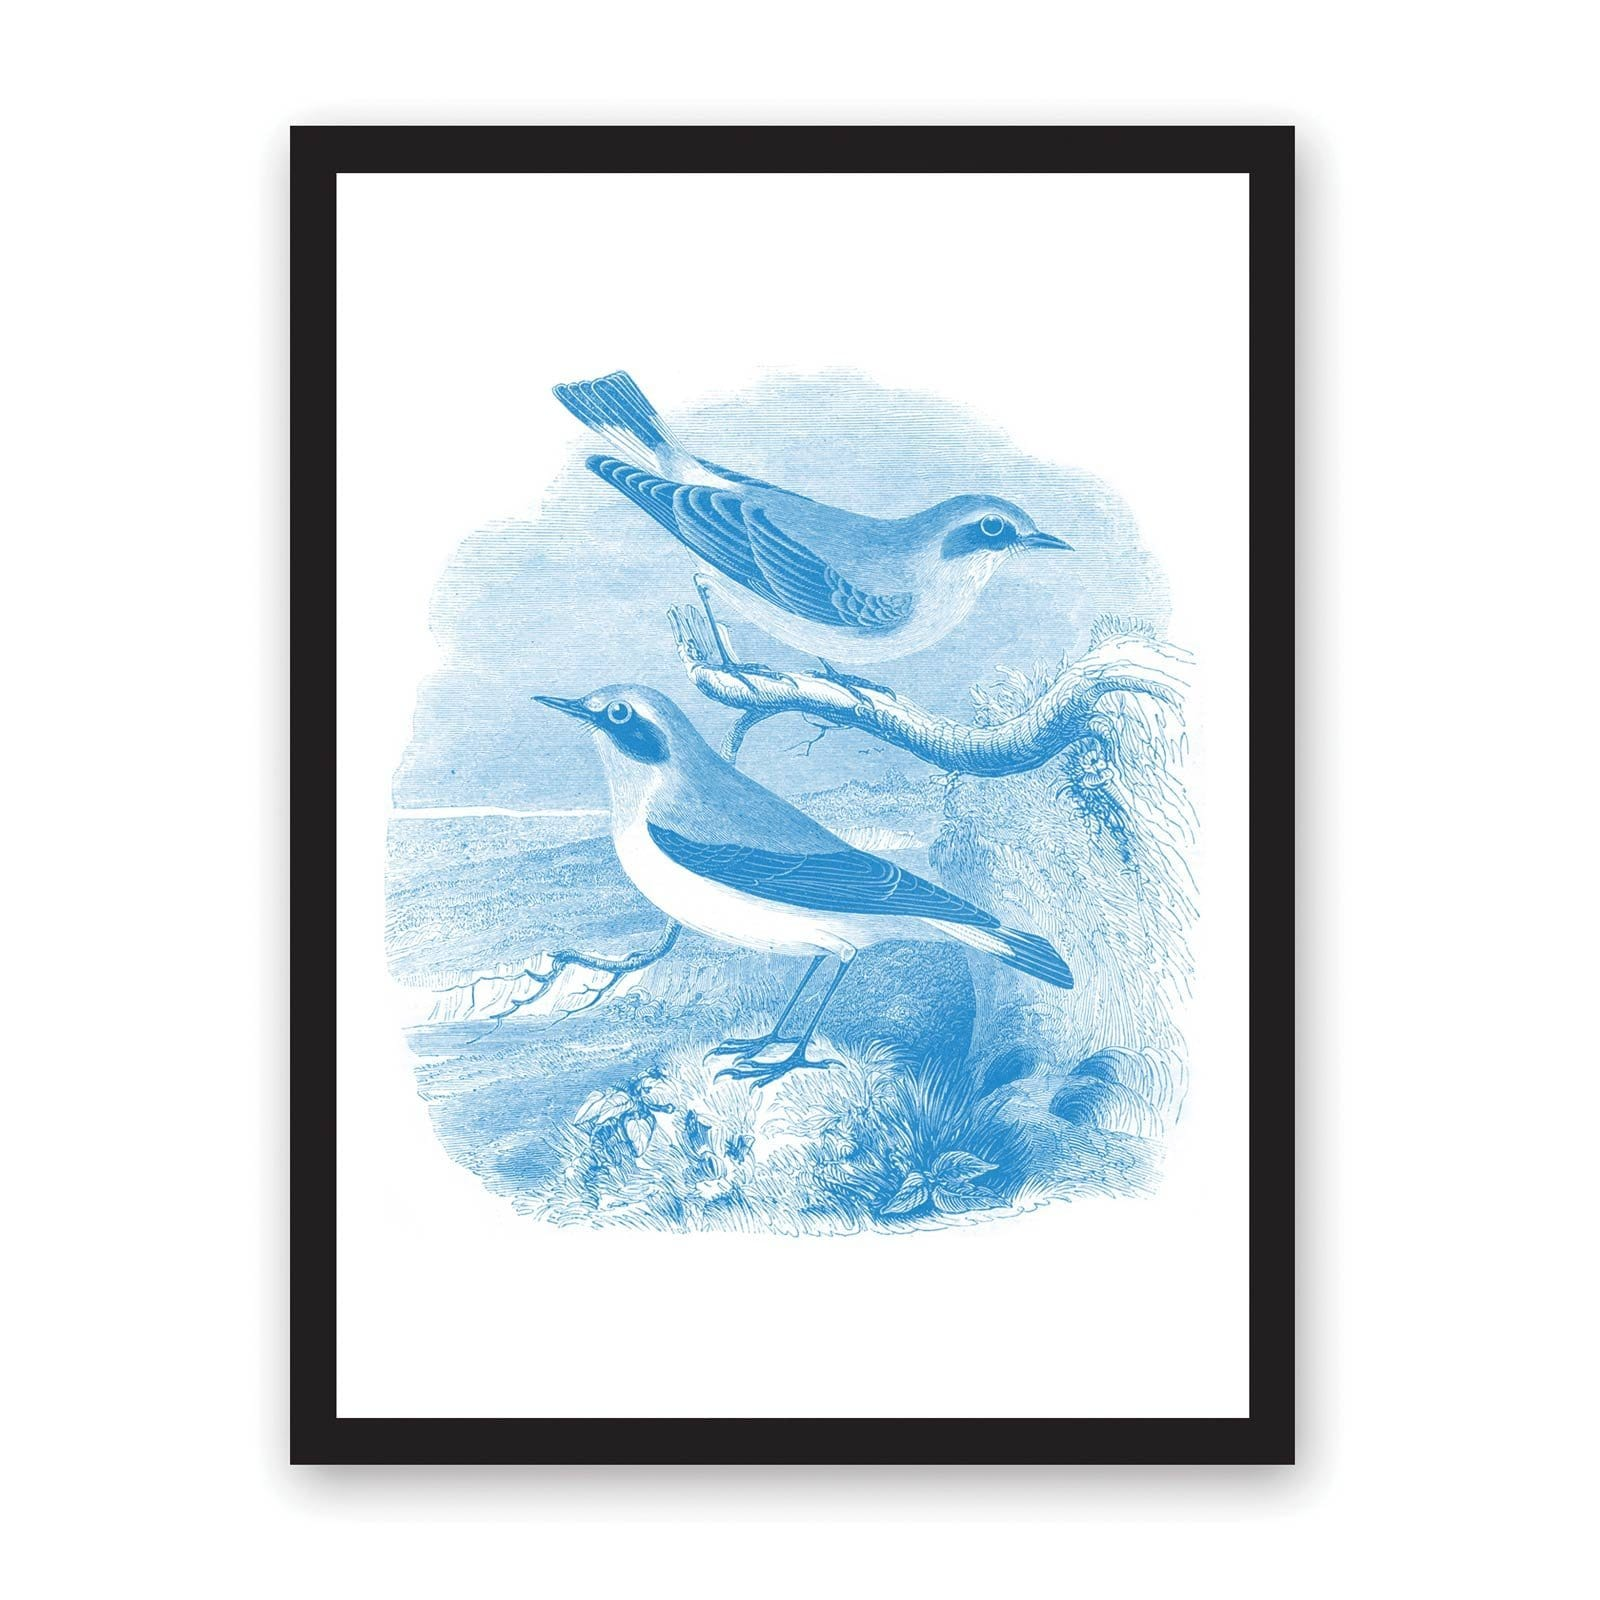 White art print with two blue drawn sea birds sat on tree branch